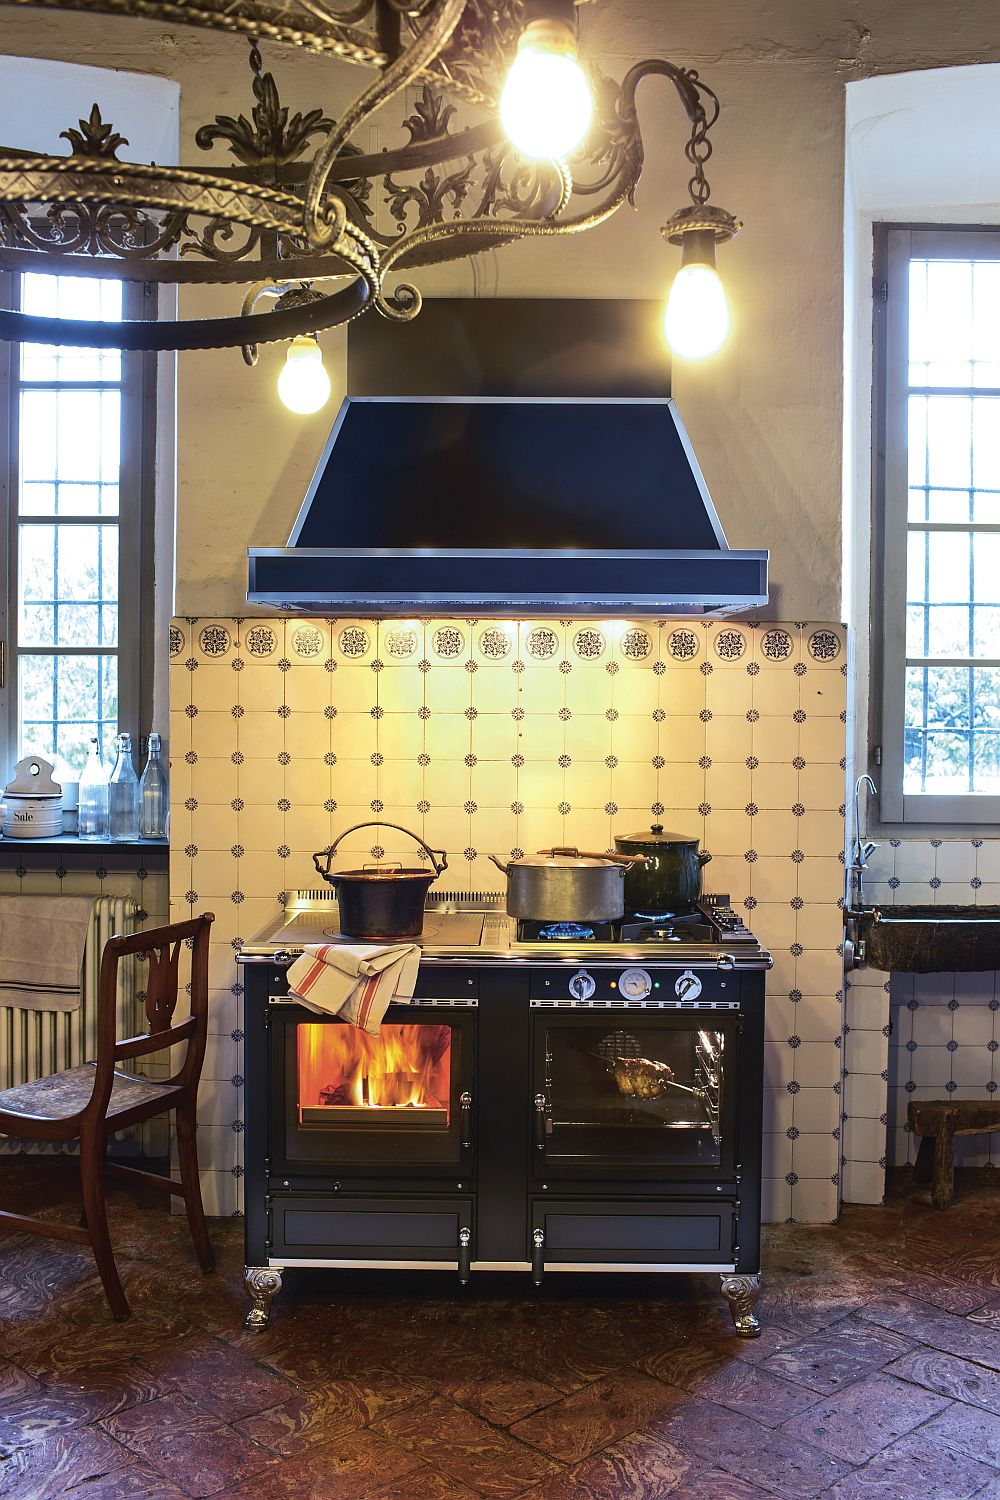 Add some excitement to the rustic kitchen with a latest, eco-friendly wood-burning cookers